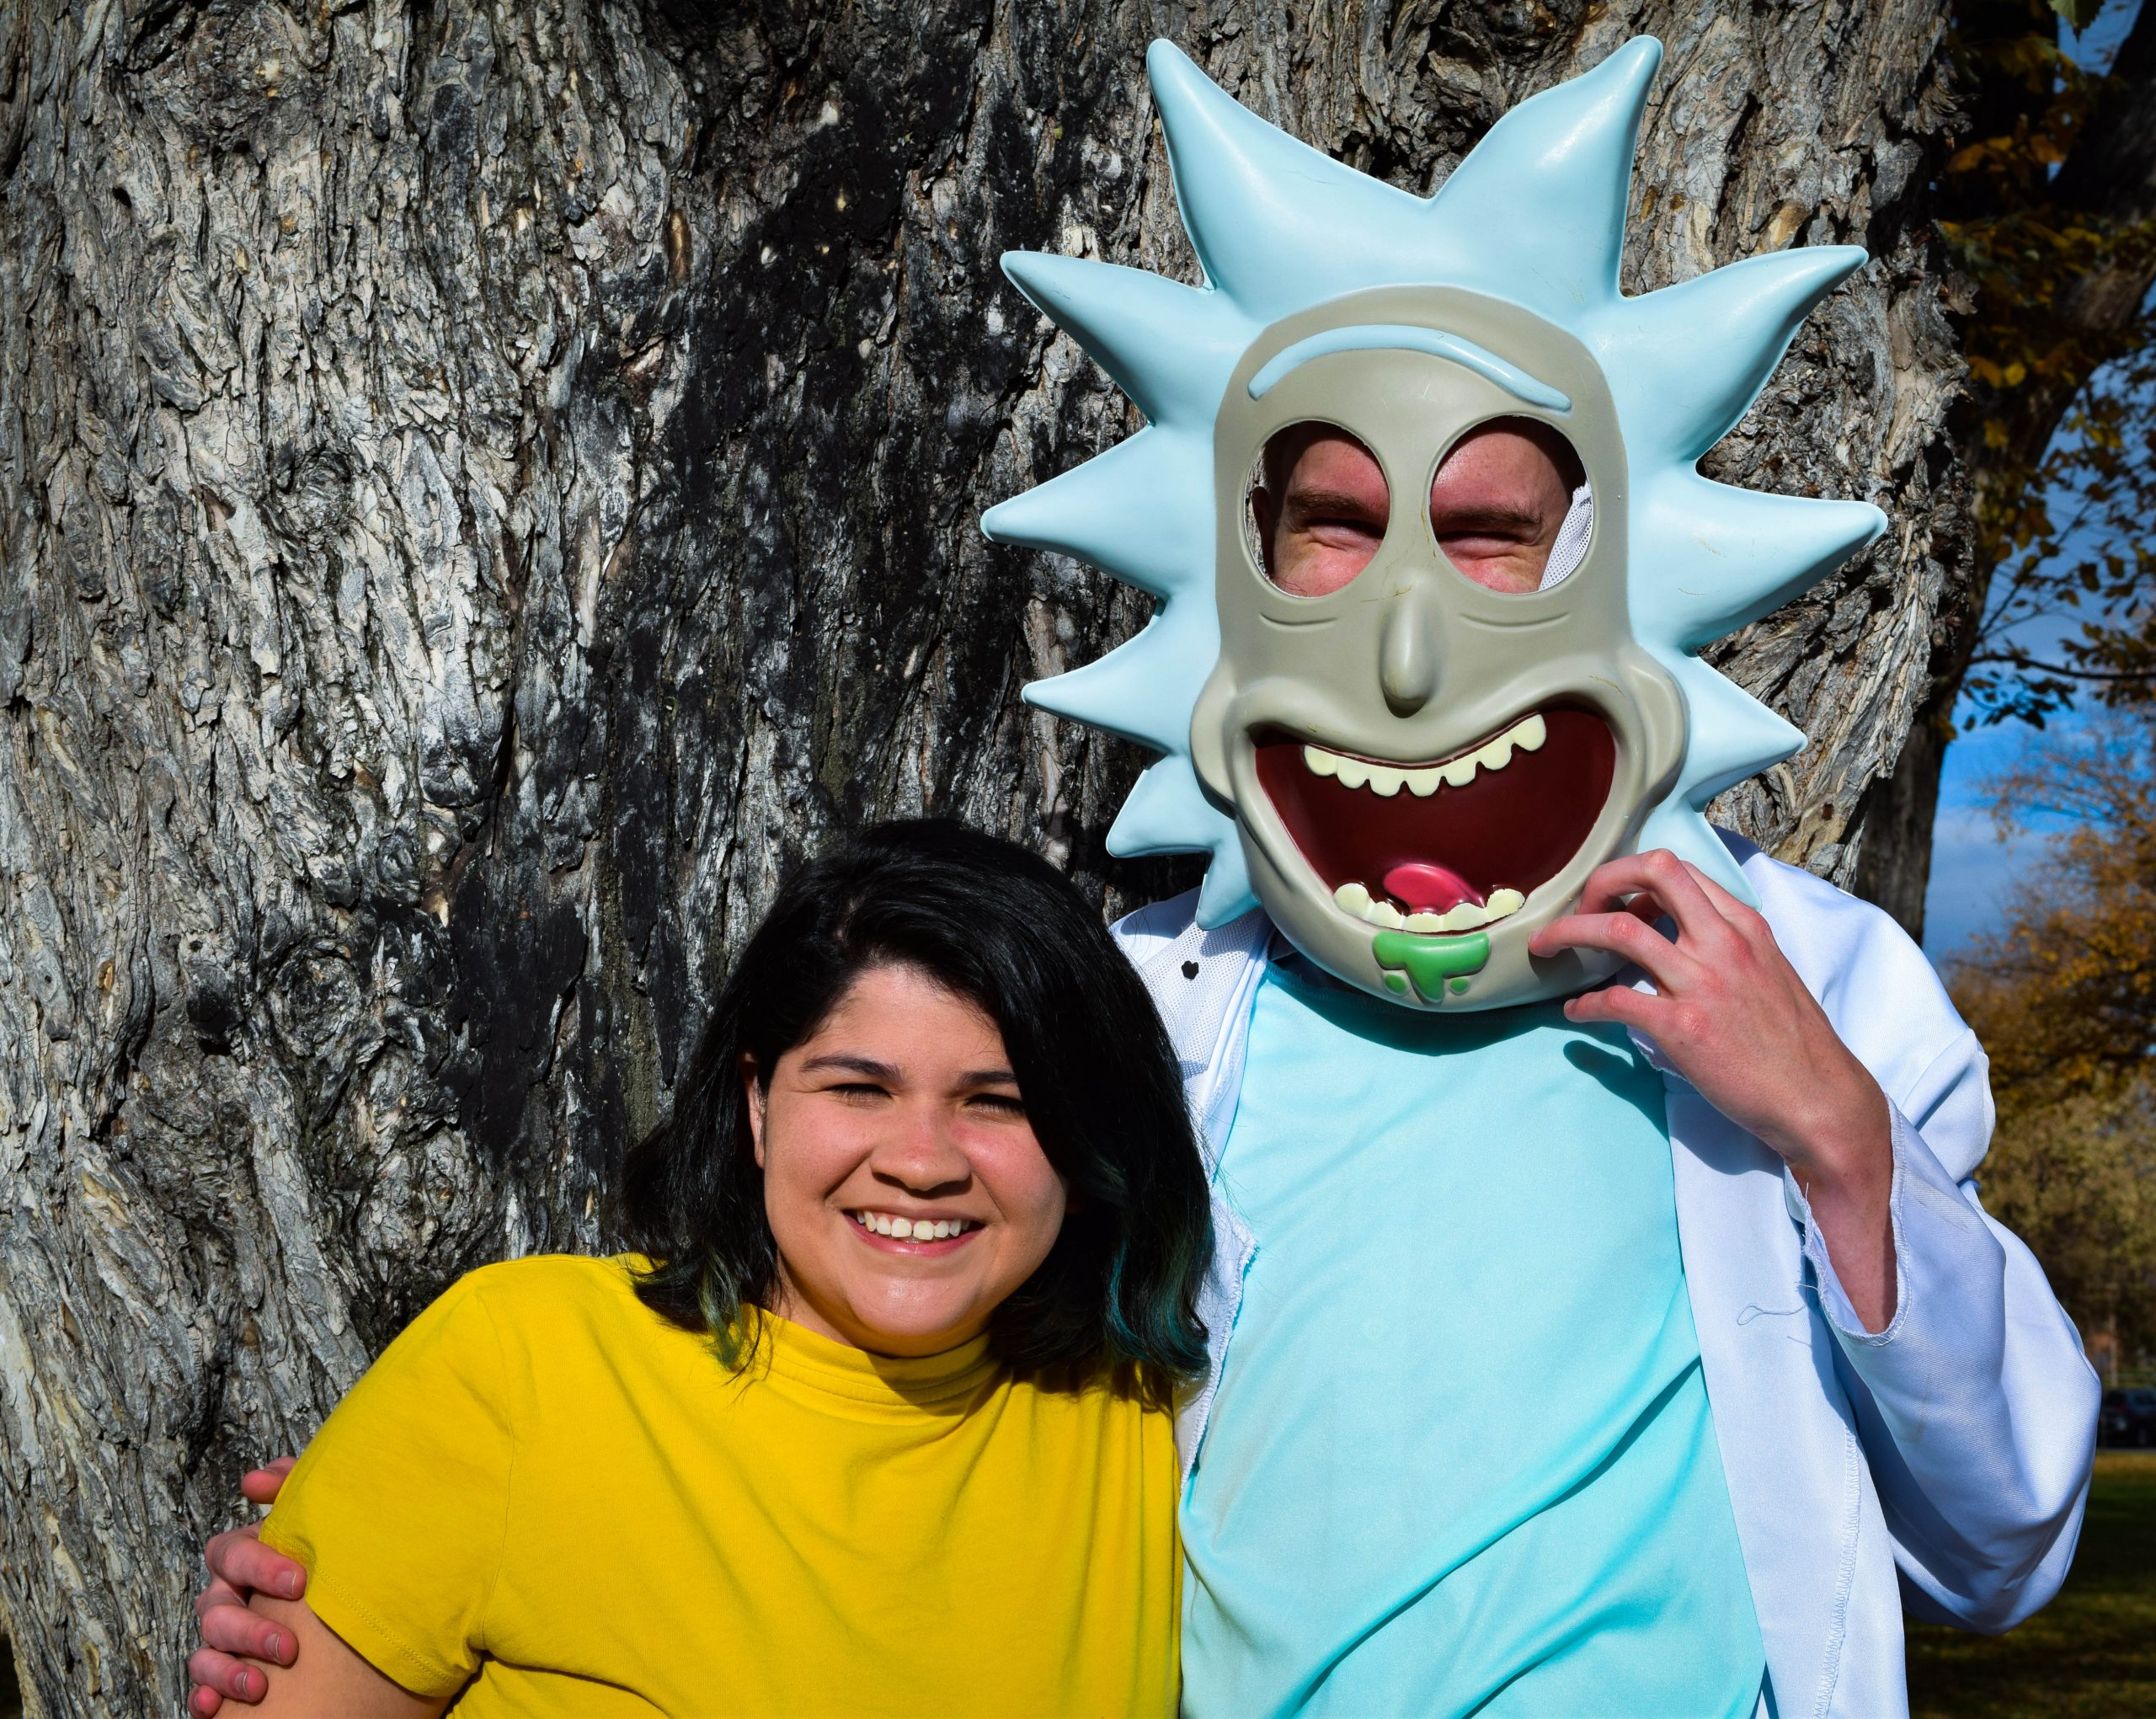 Rick and morty couple costume